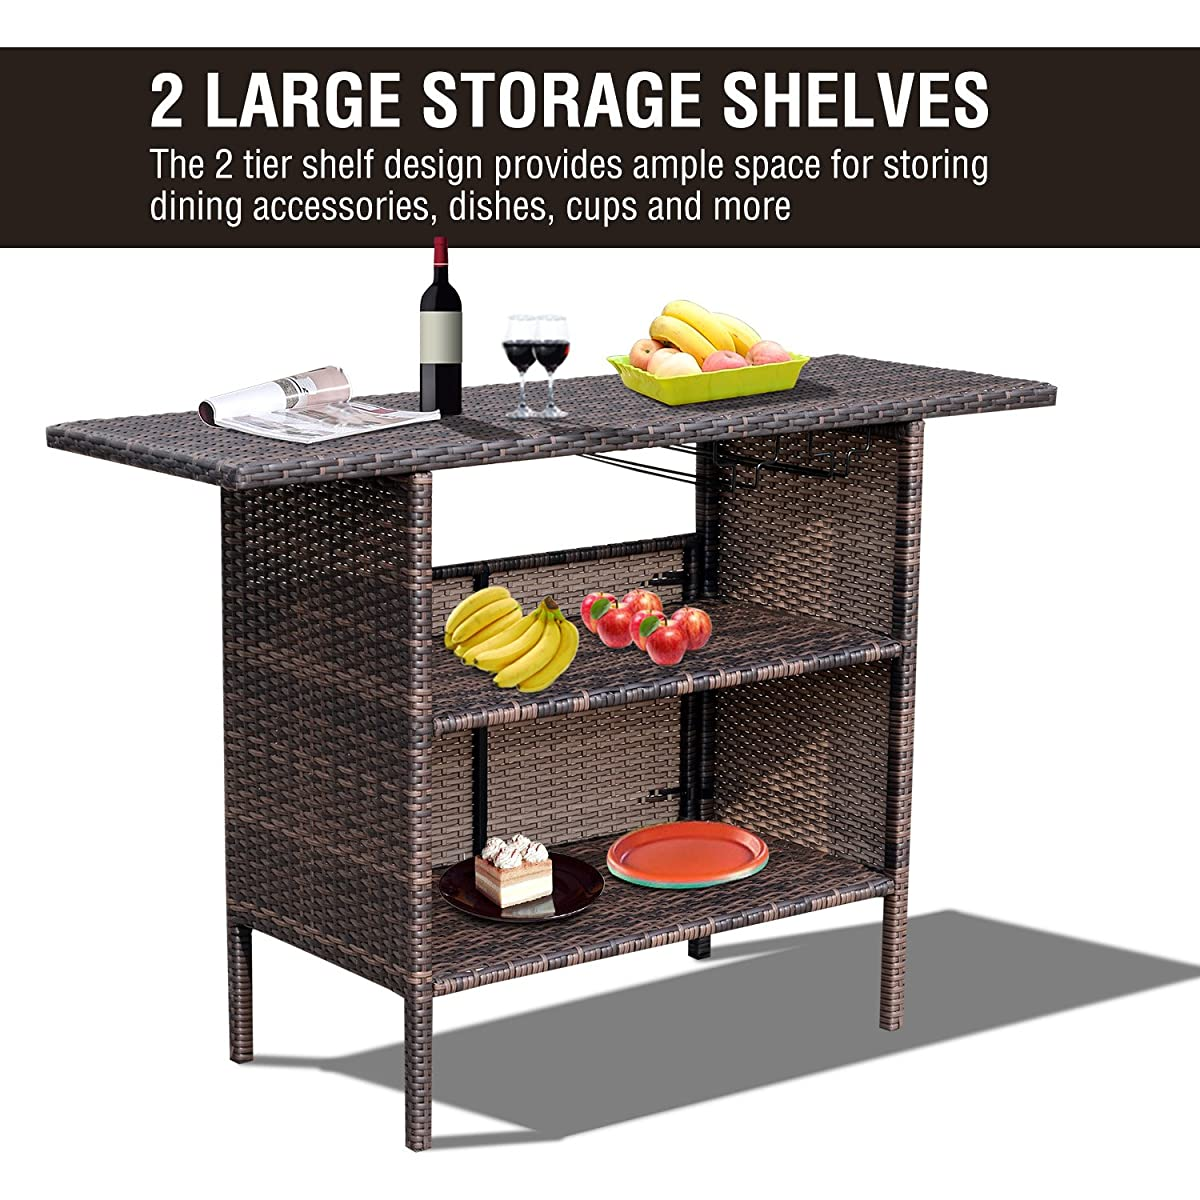 Outsunny PE Wicker Rattan Patio Bar Counter Table Serving Station With Storage Shelves